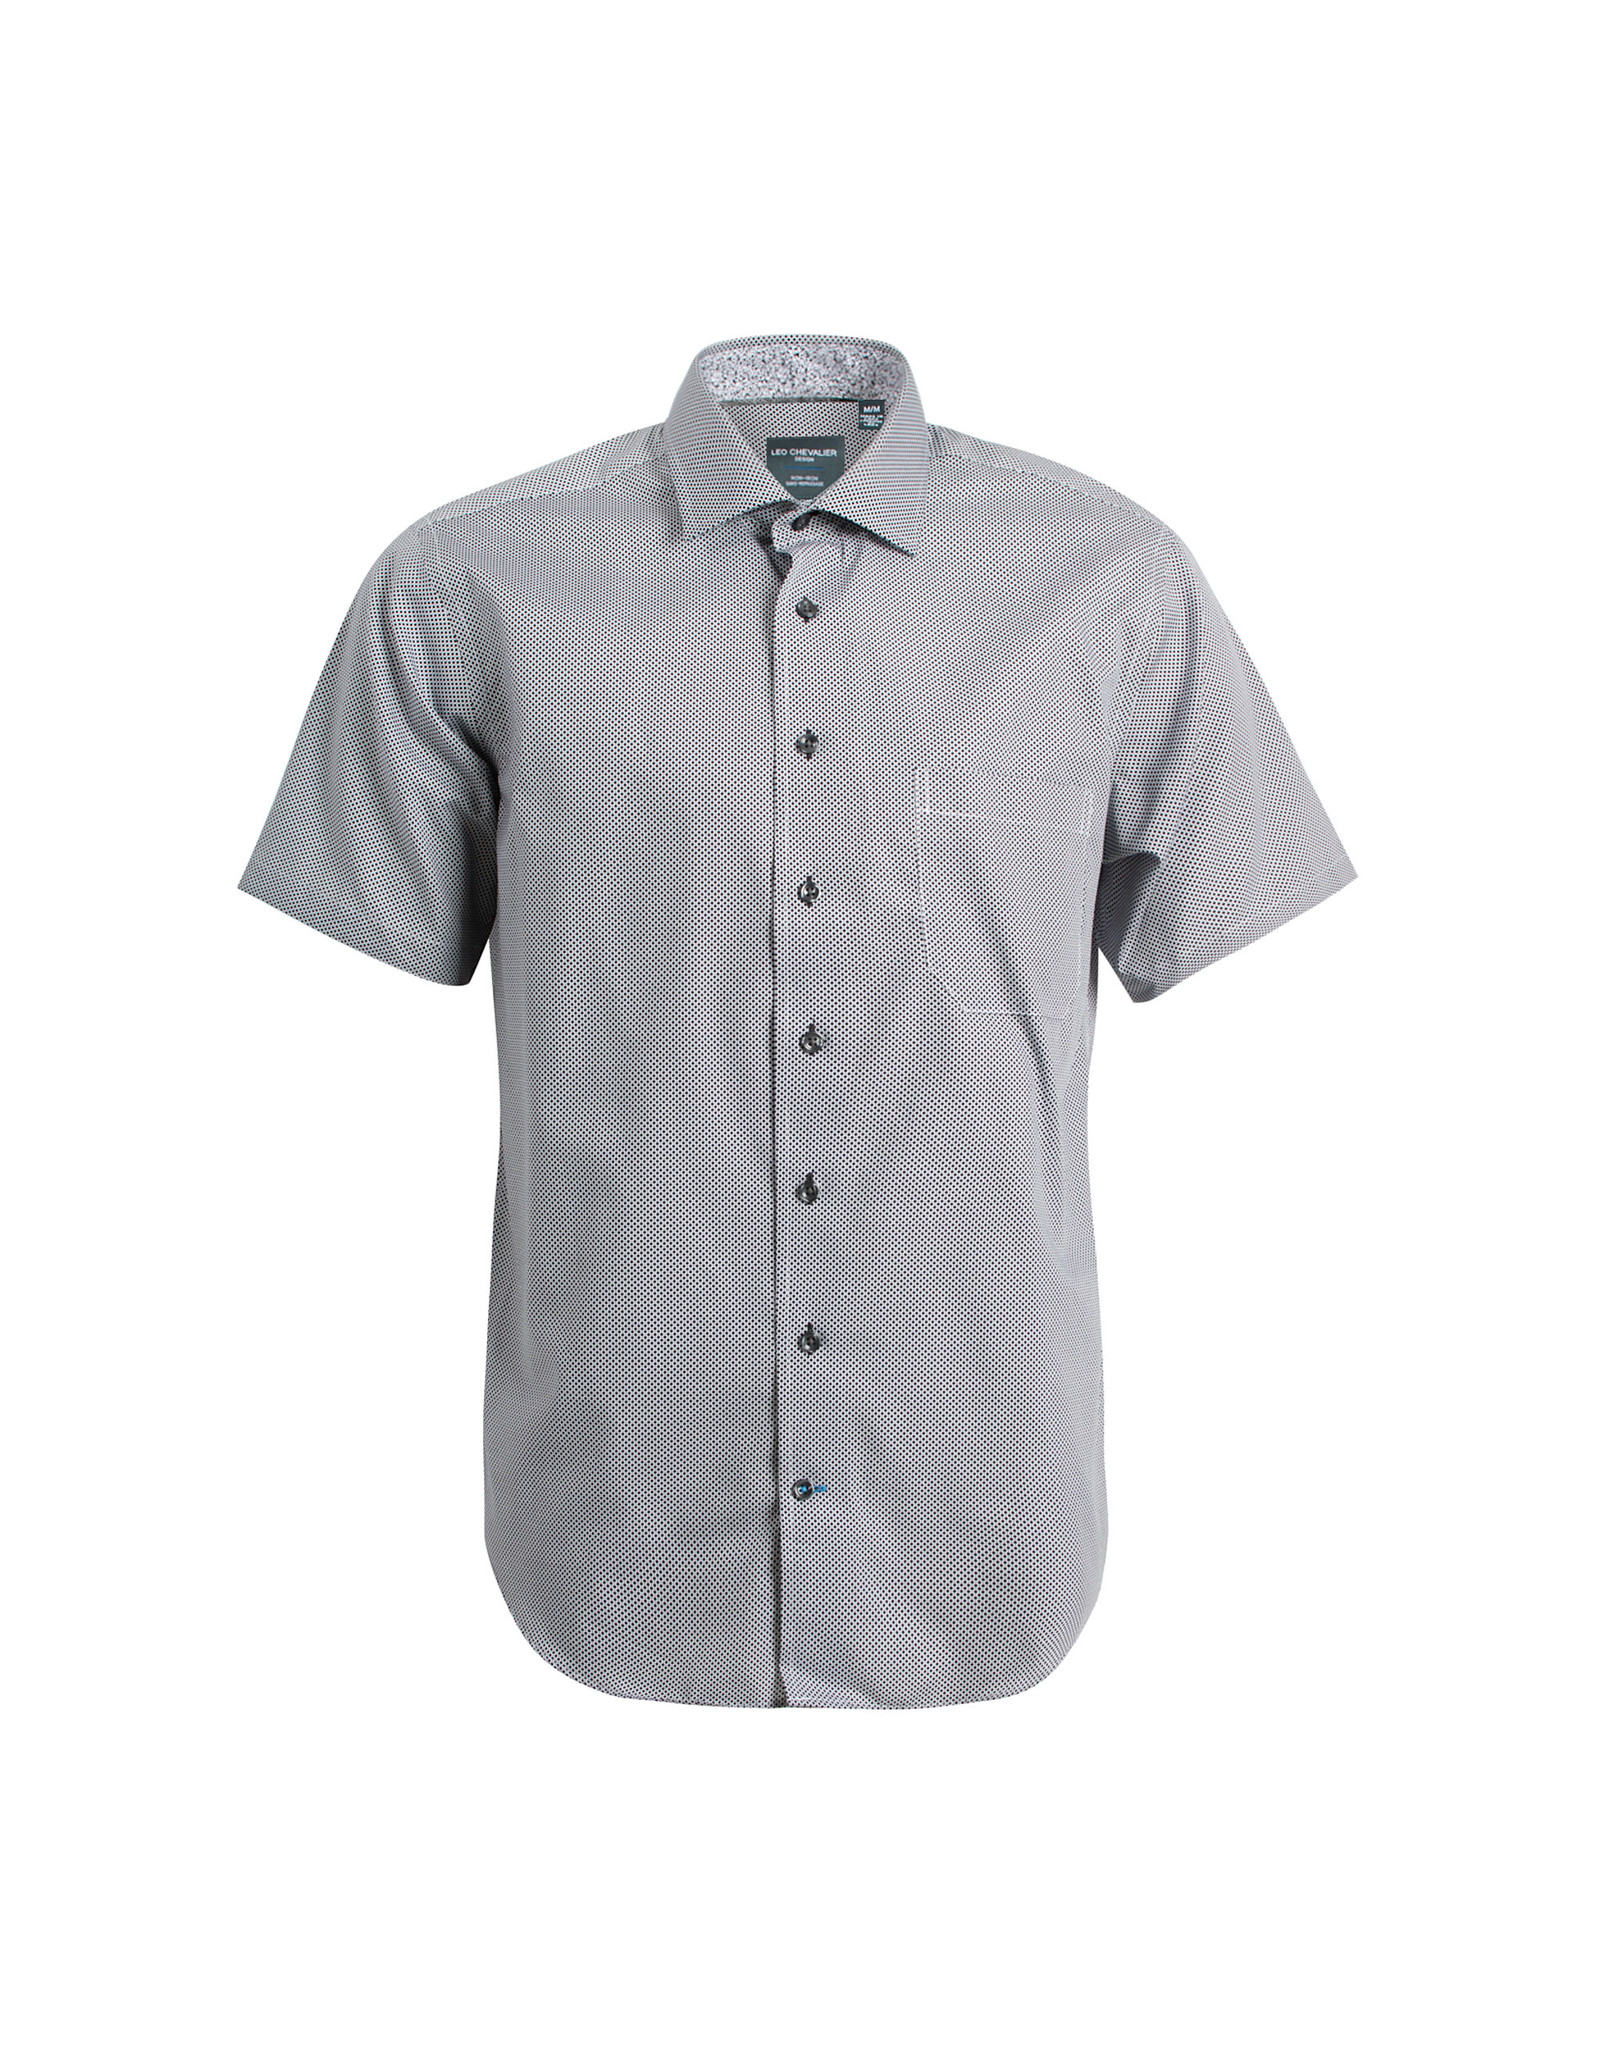 Leo Chevalier 100% Cotton Non Iron Button Down Short Sleeve